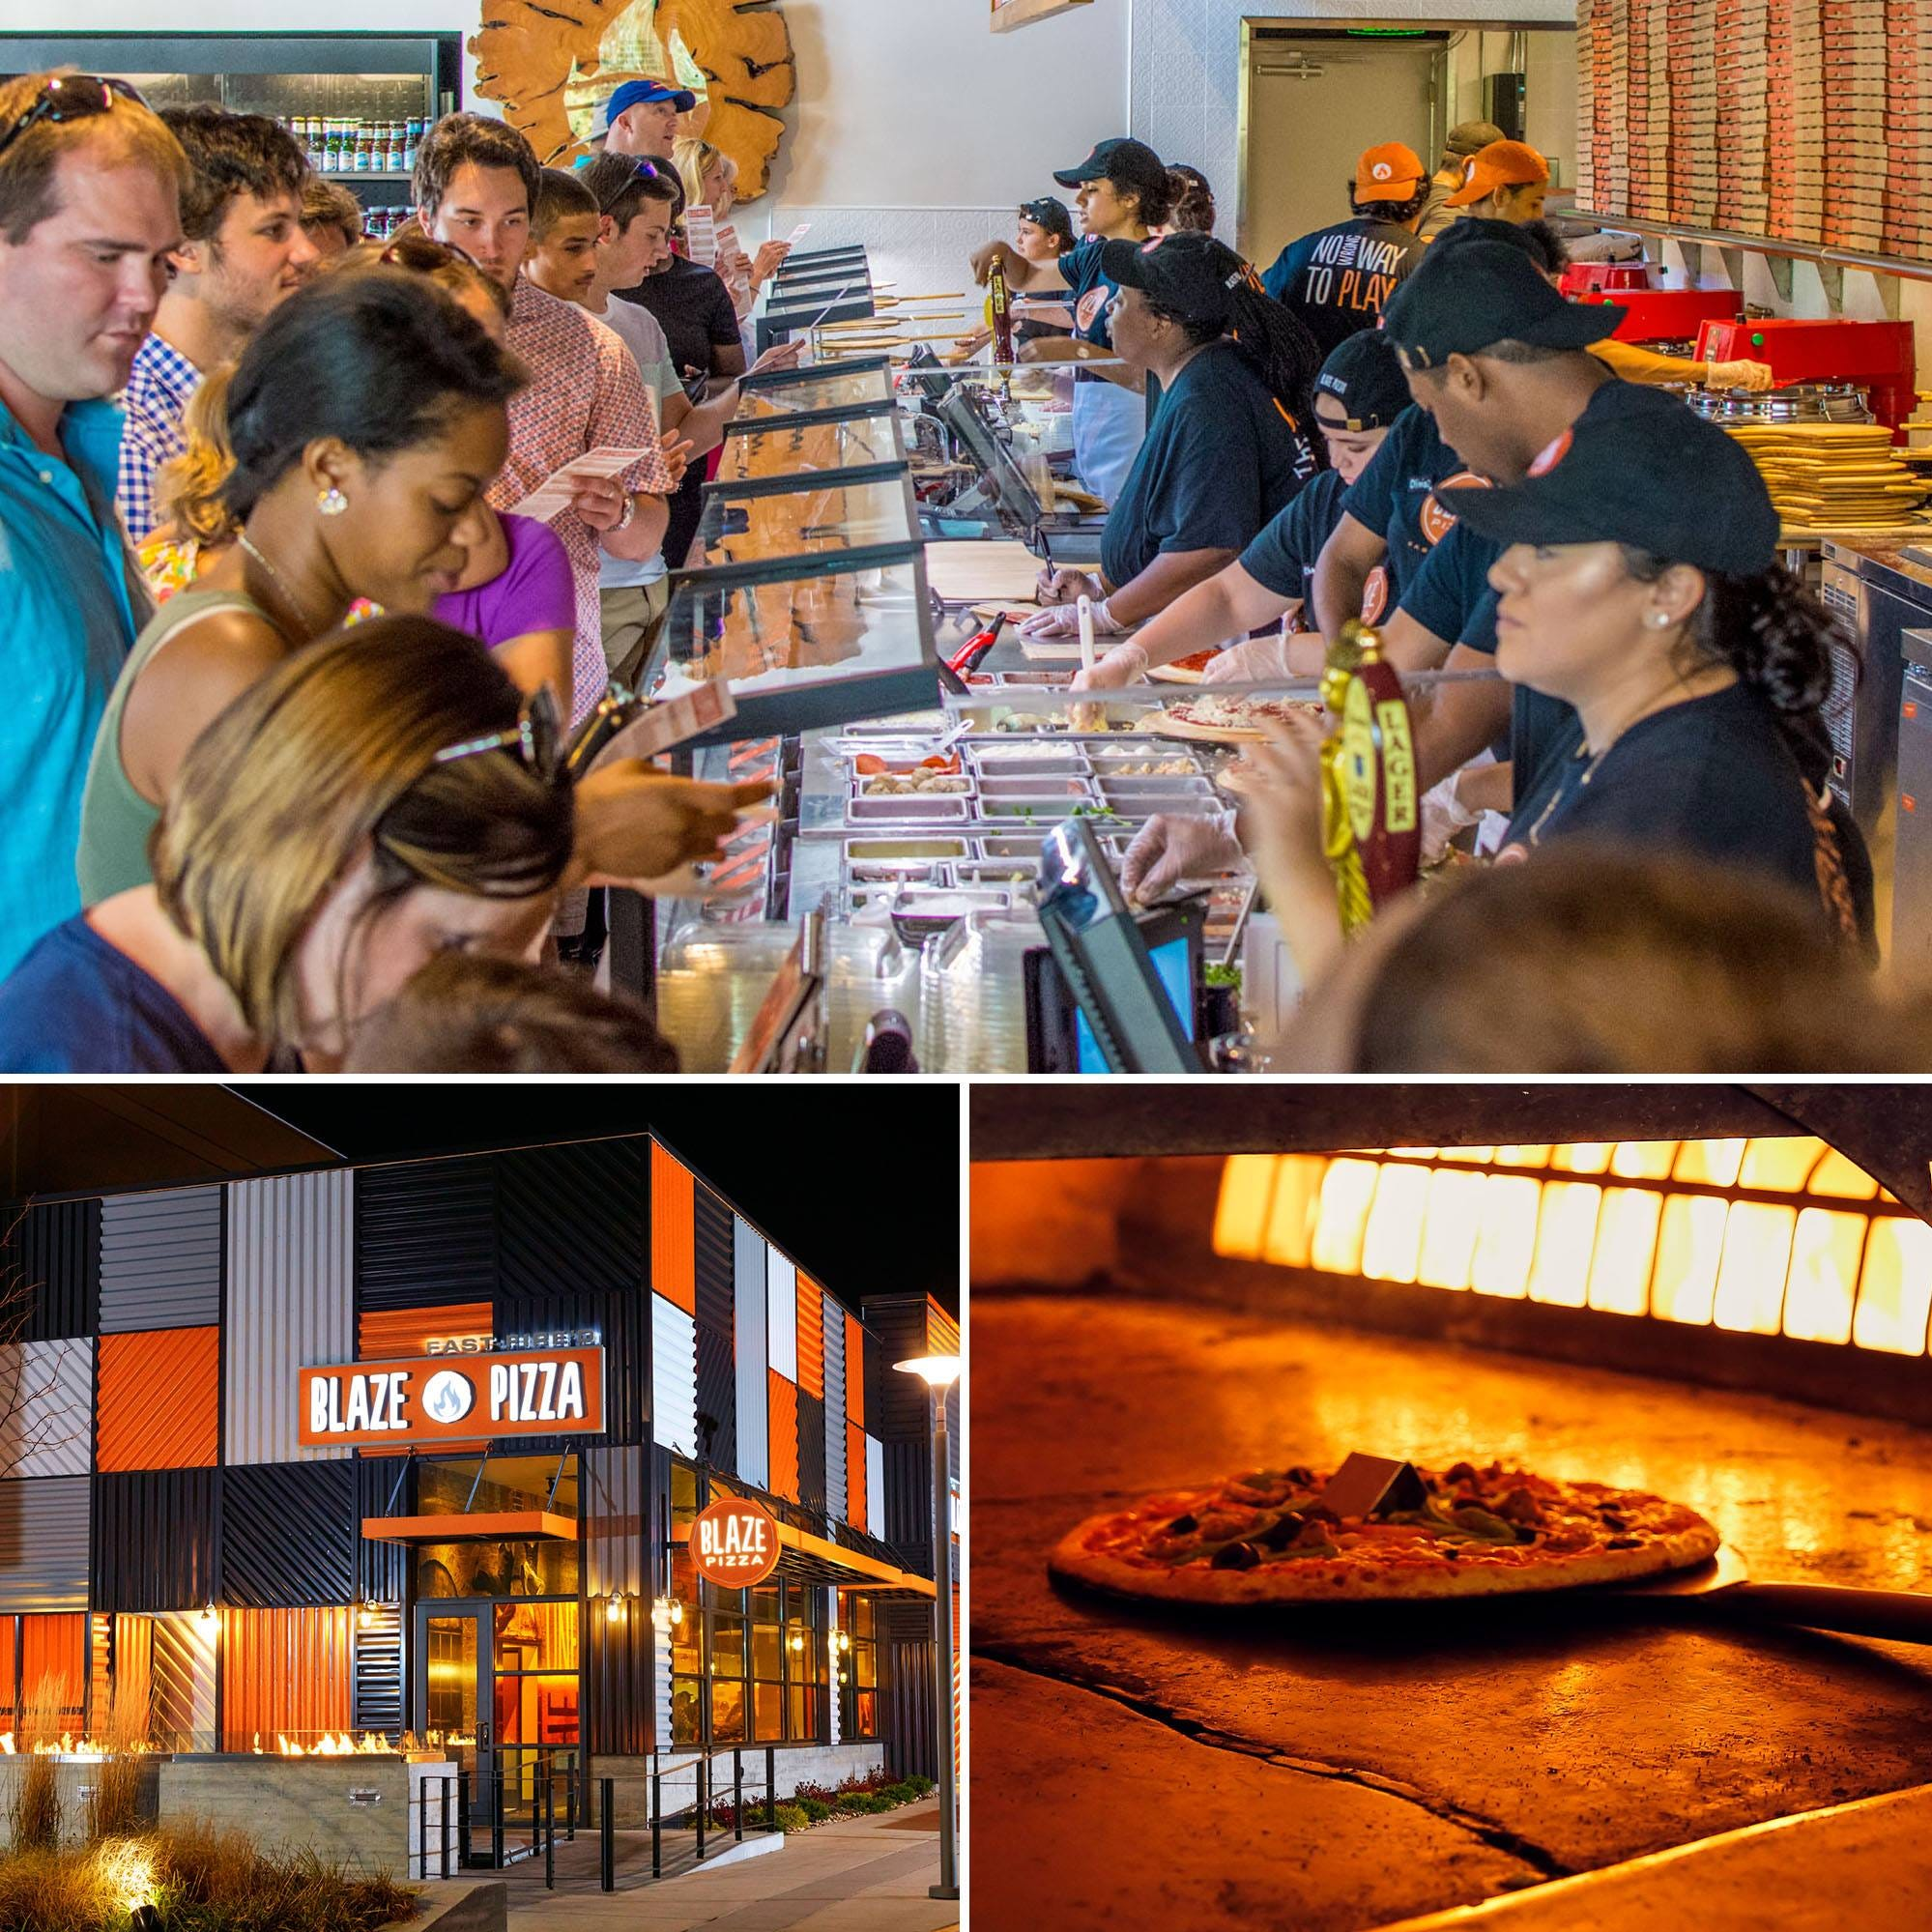 Blaze Pizza franchise looking to open in Las Cruces